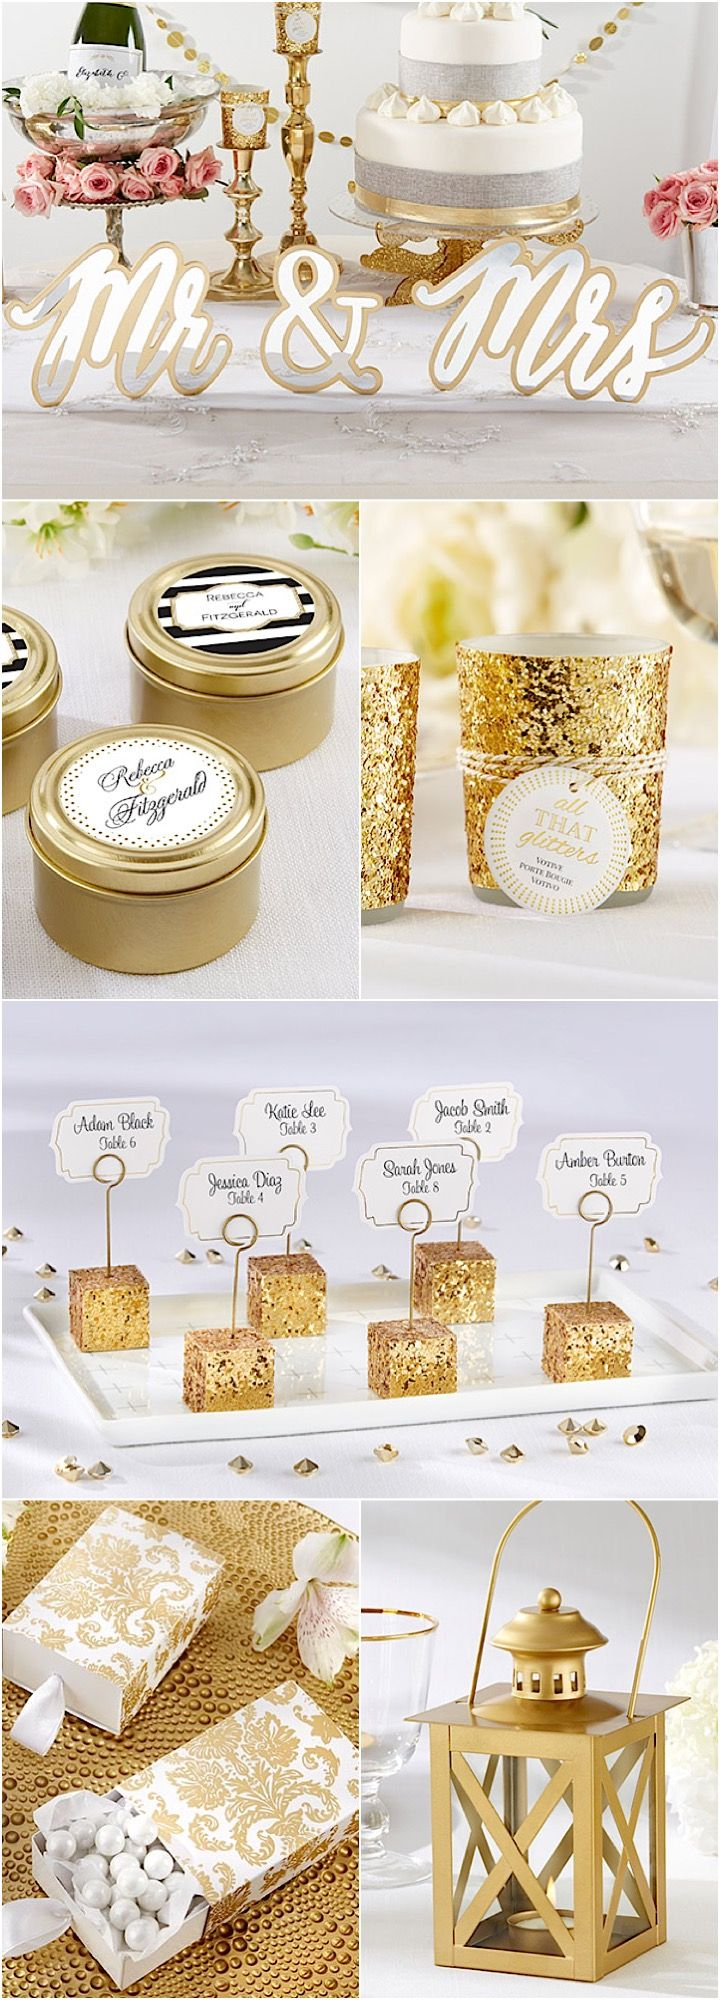 197 best Wedding Favors images on Pinterest | Wedding keepsakes ...